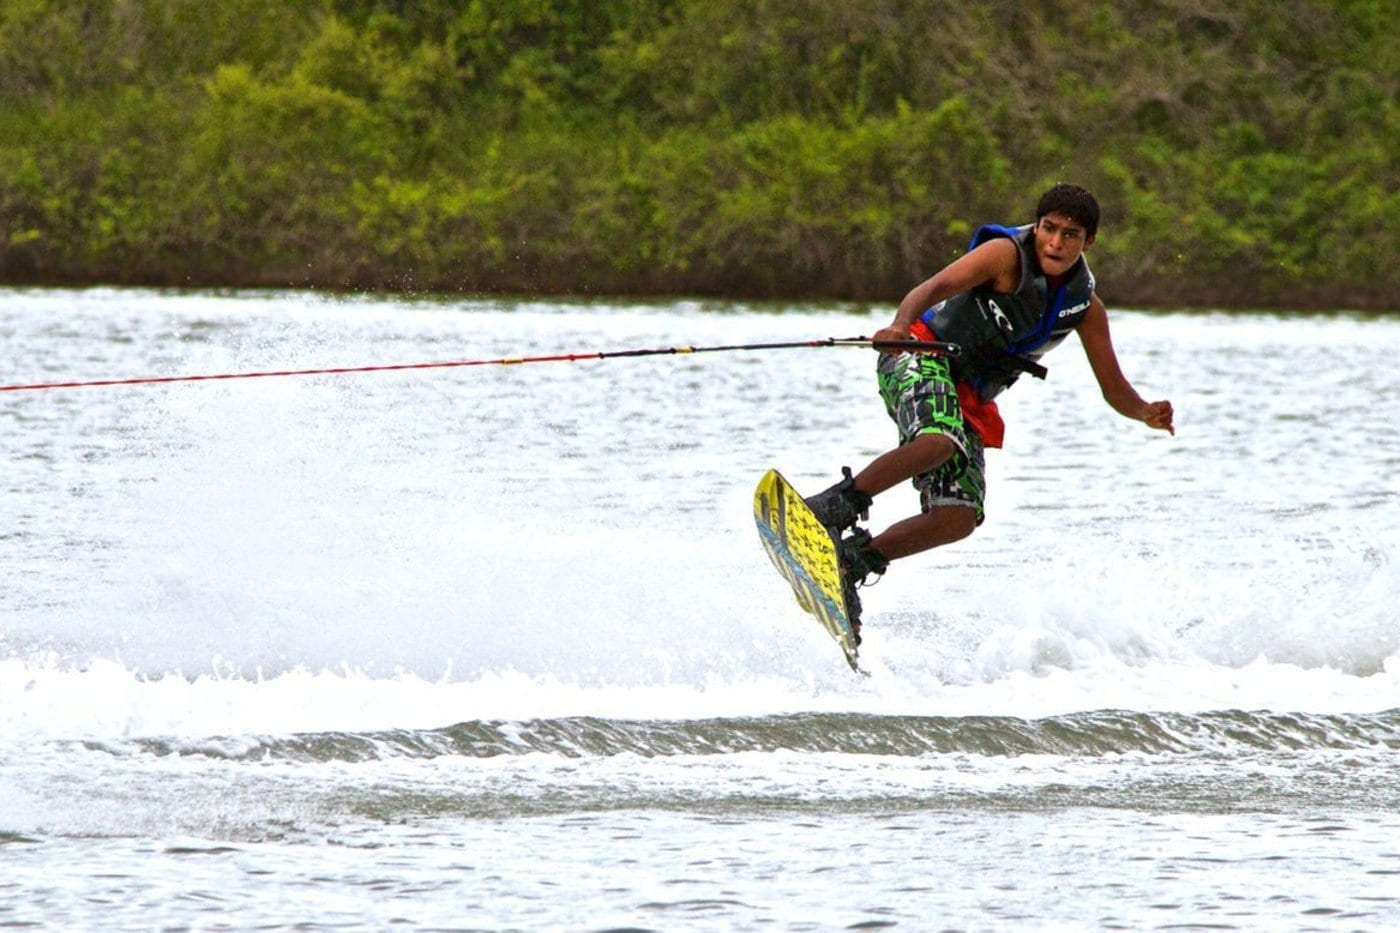 Shamanth Kumar getting air time during wakeboardin© Mantra Surf Club